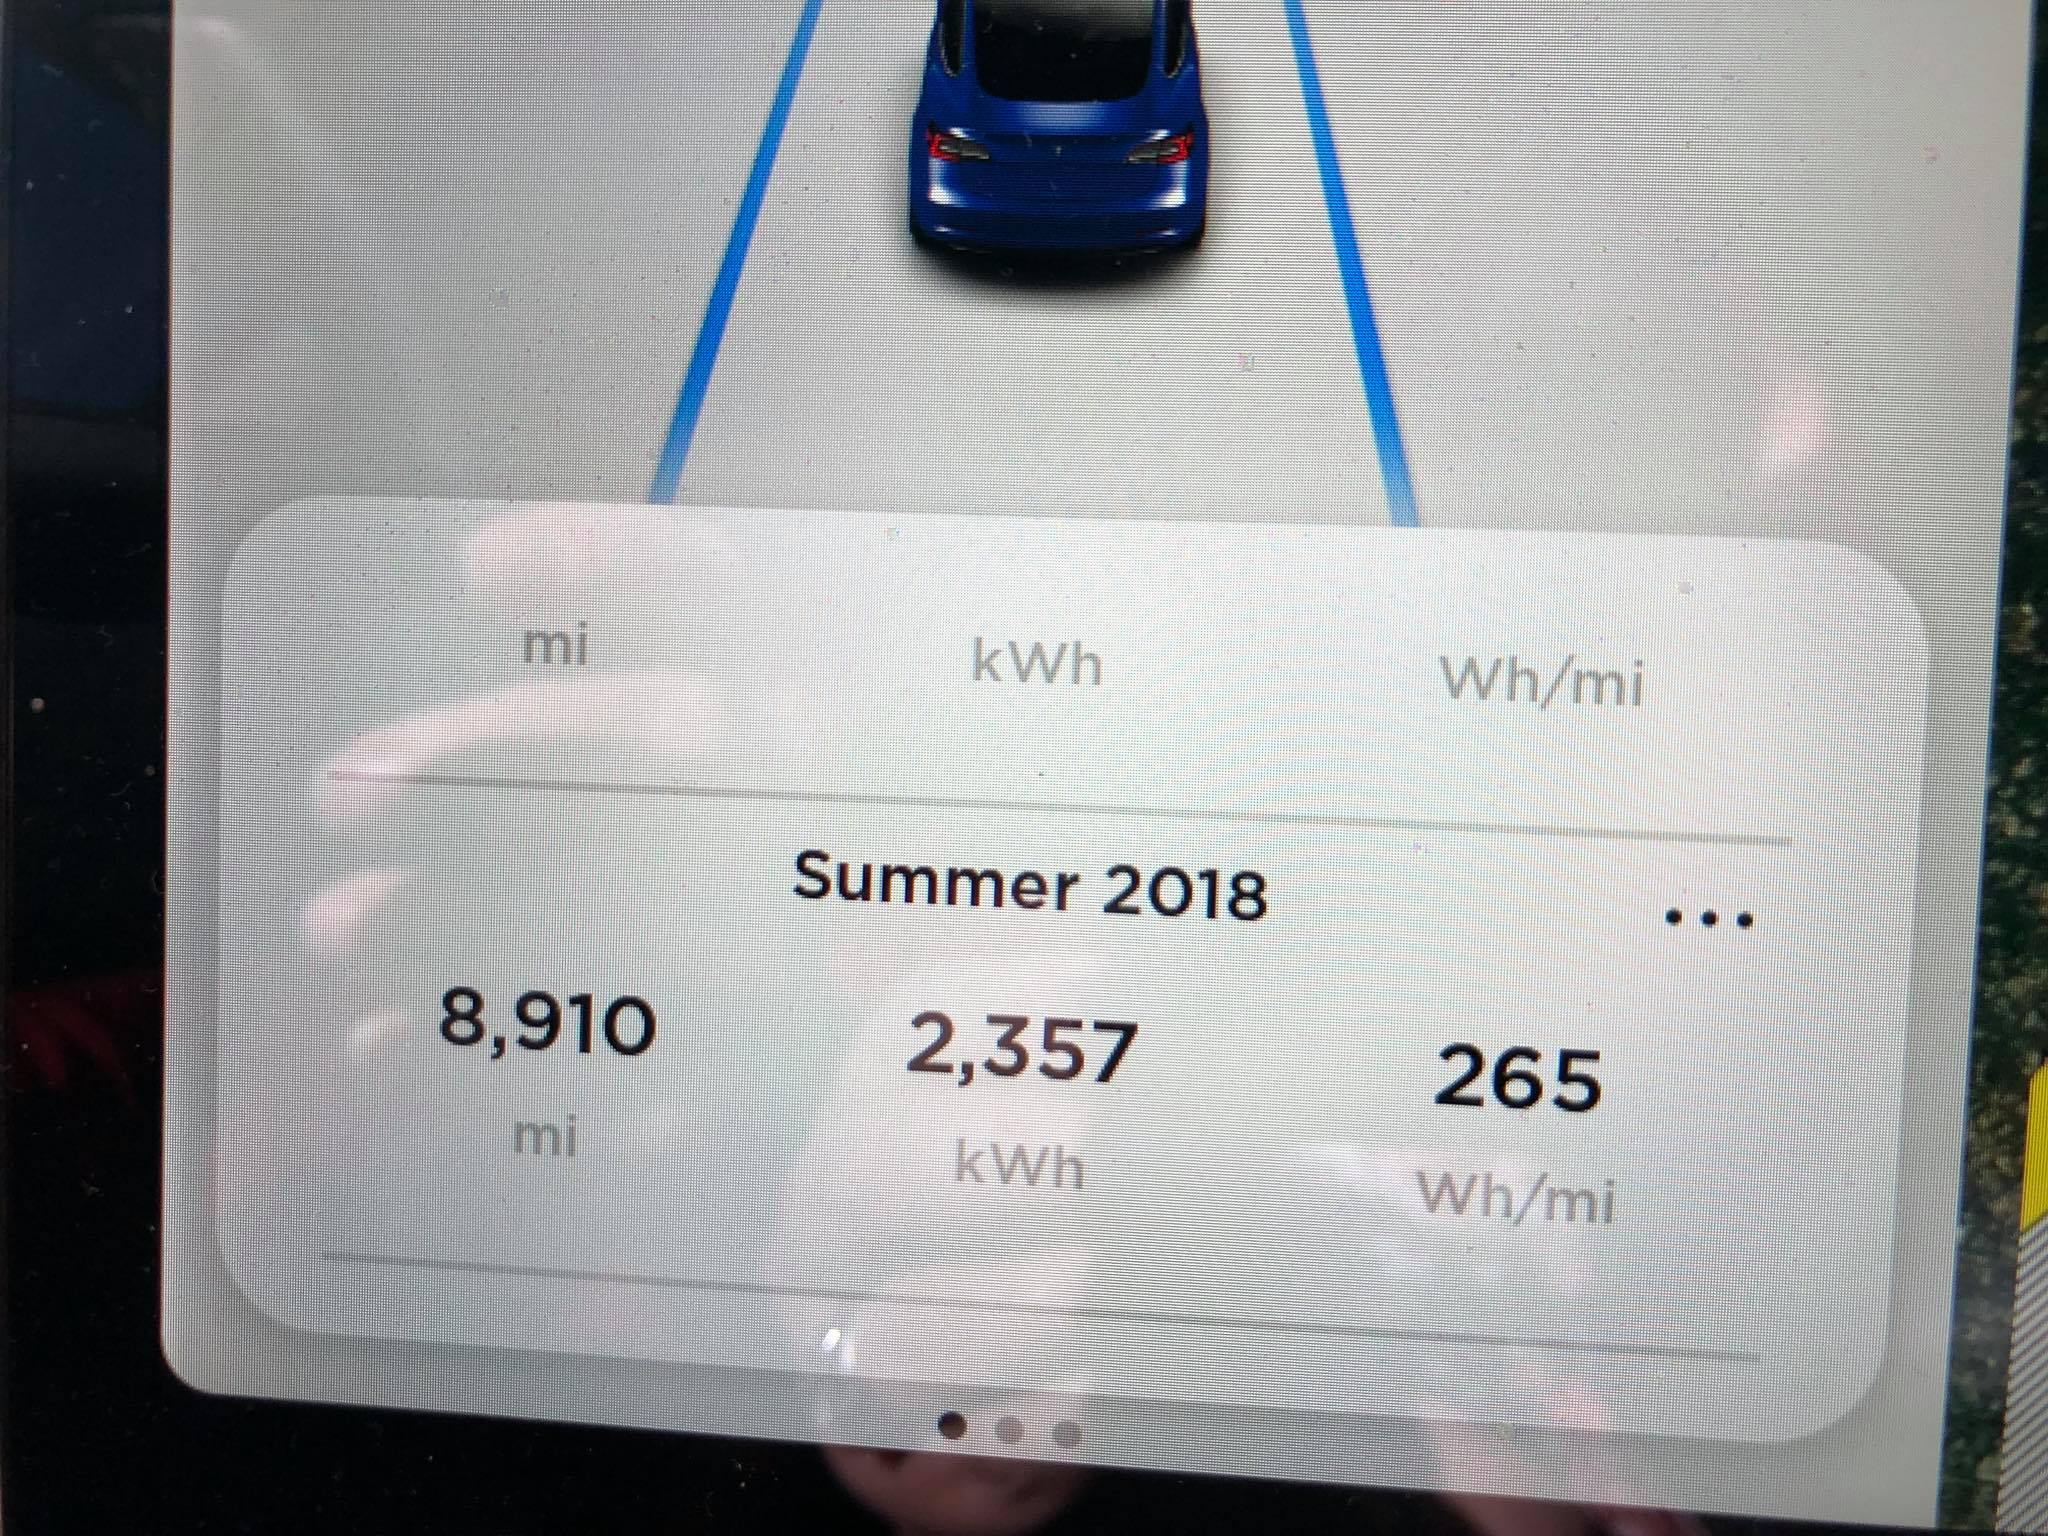 Tesla Model 3 owner and tech evangelist shares Autopilot insights after 9k mile road trip